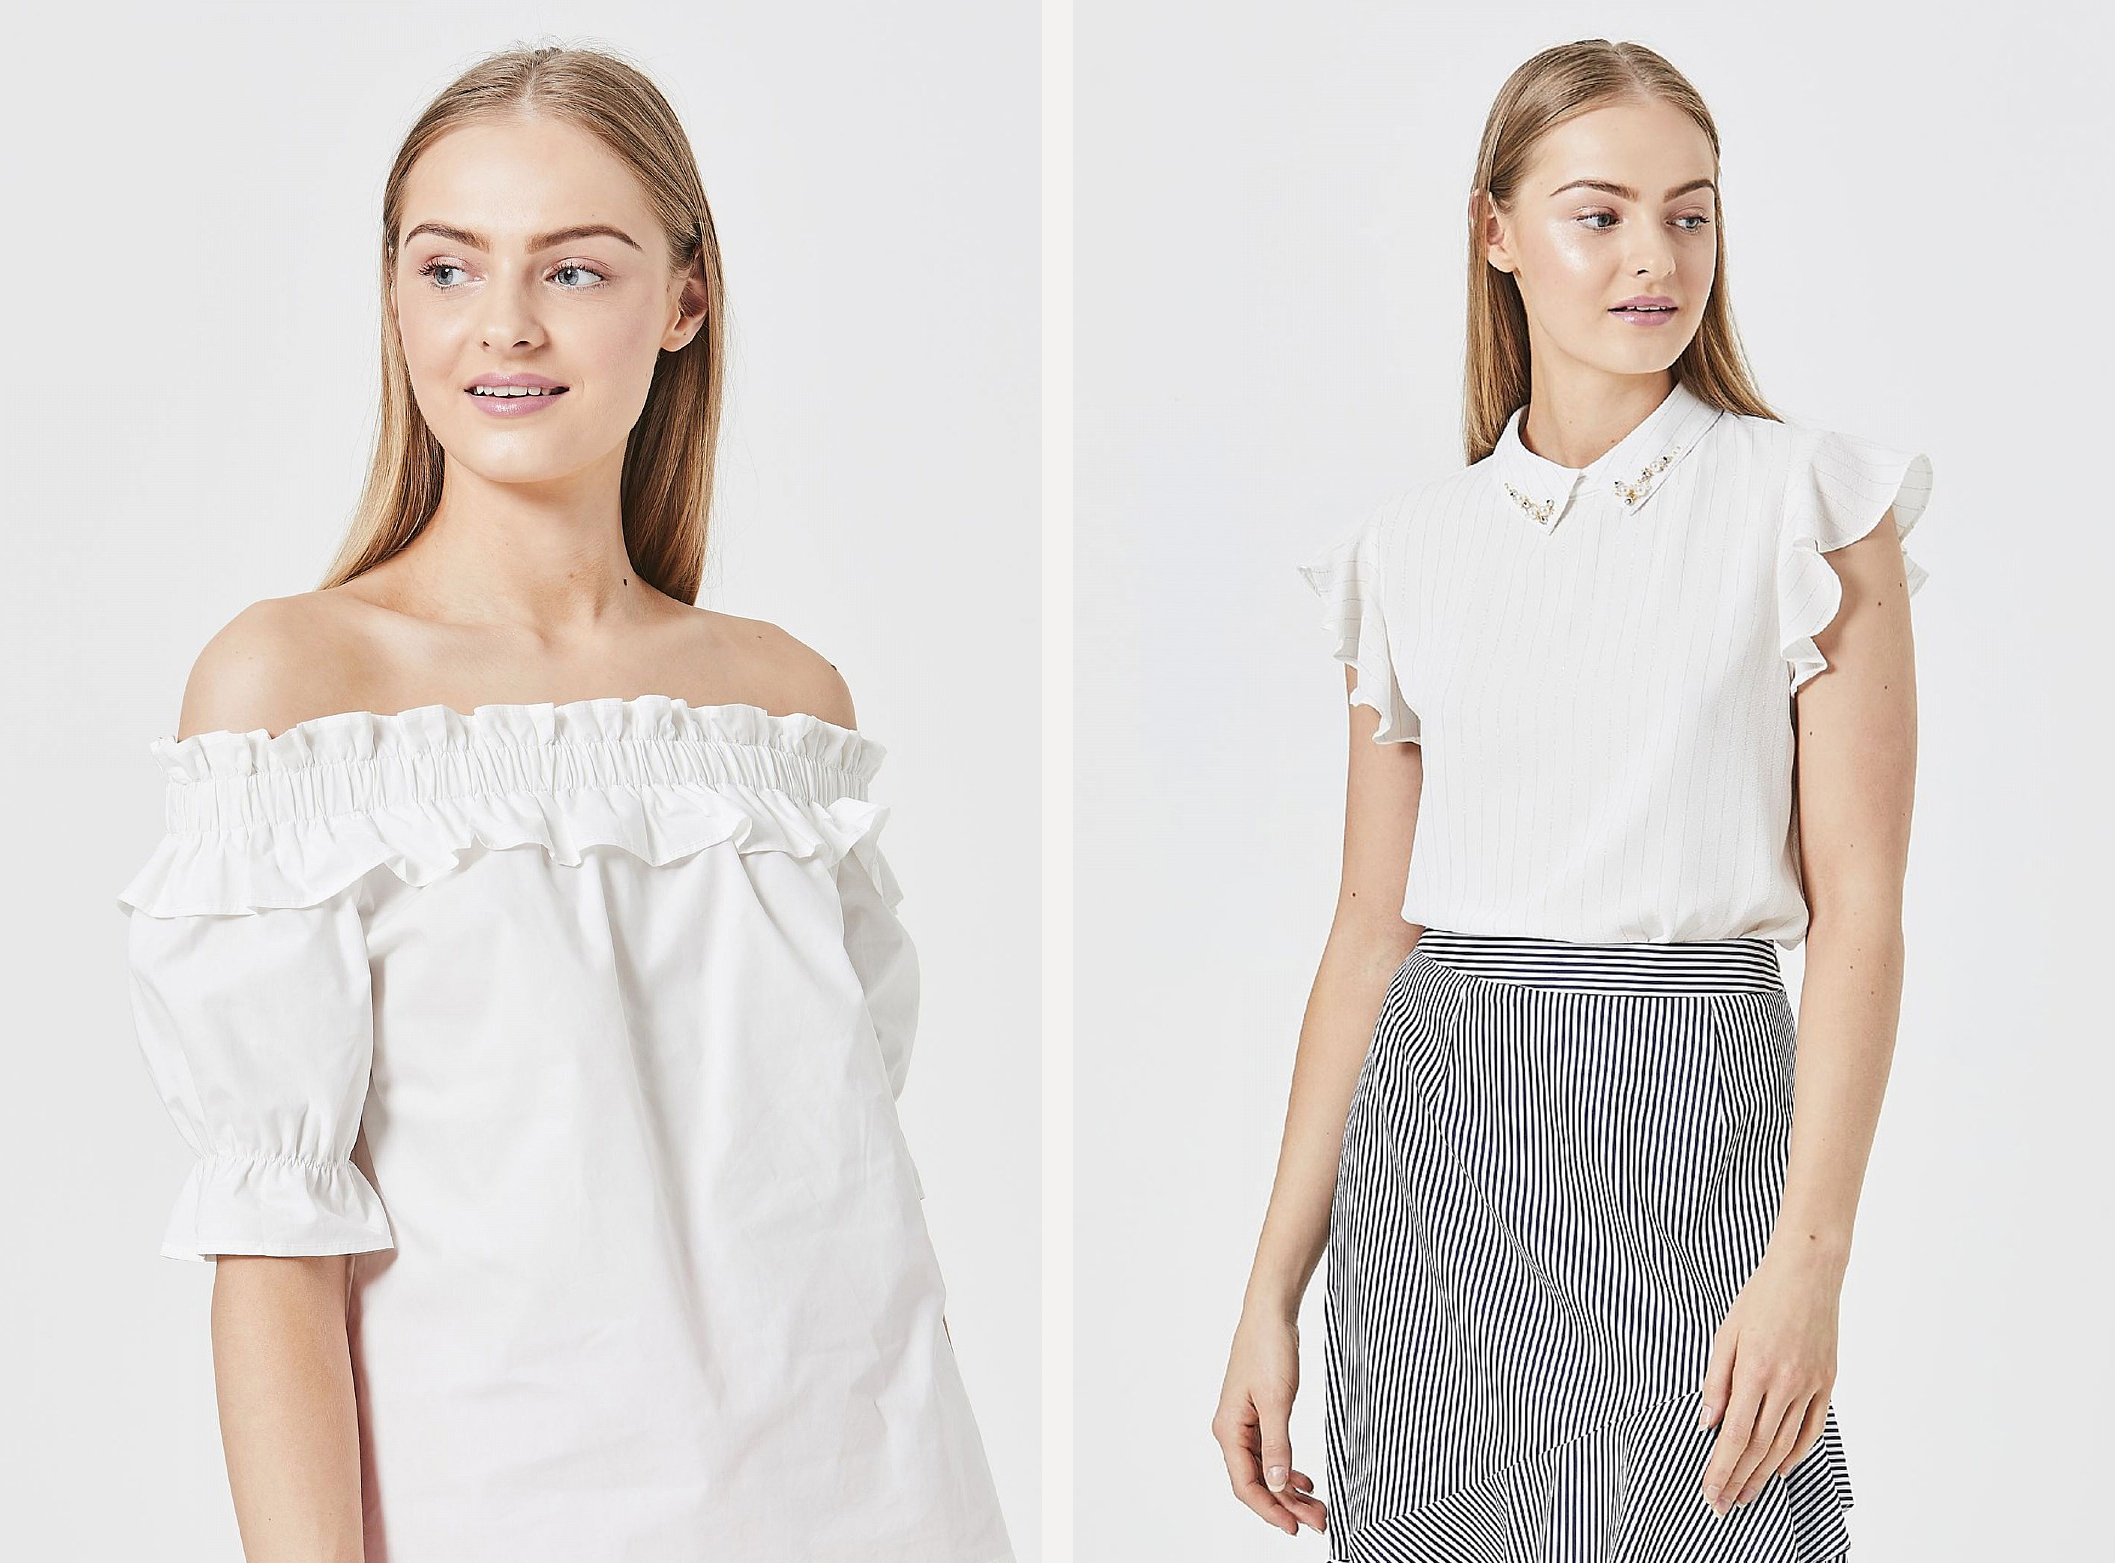 White Angeleye fashion tops